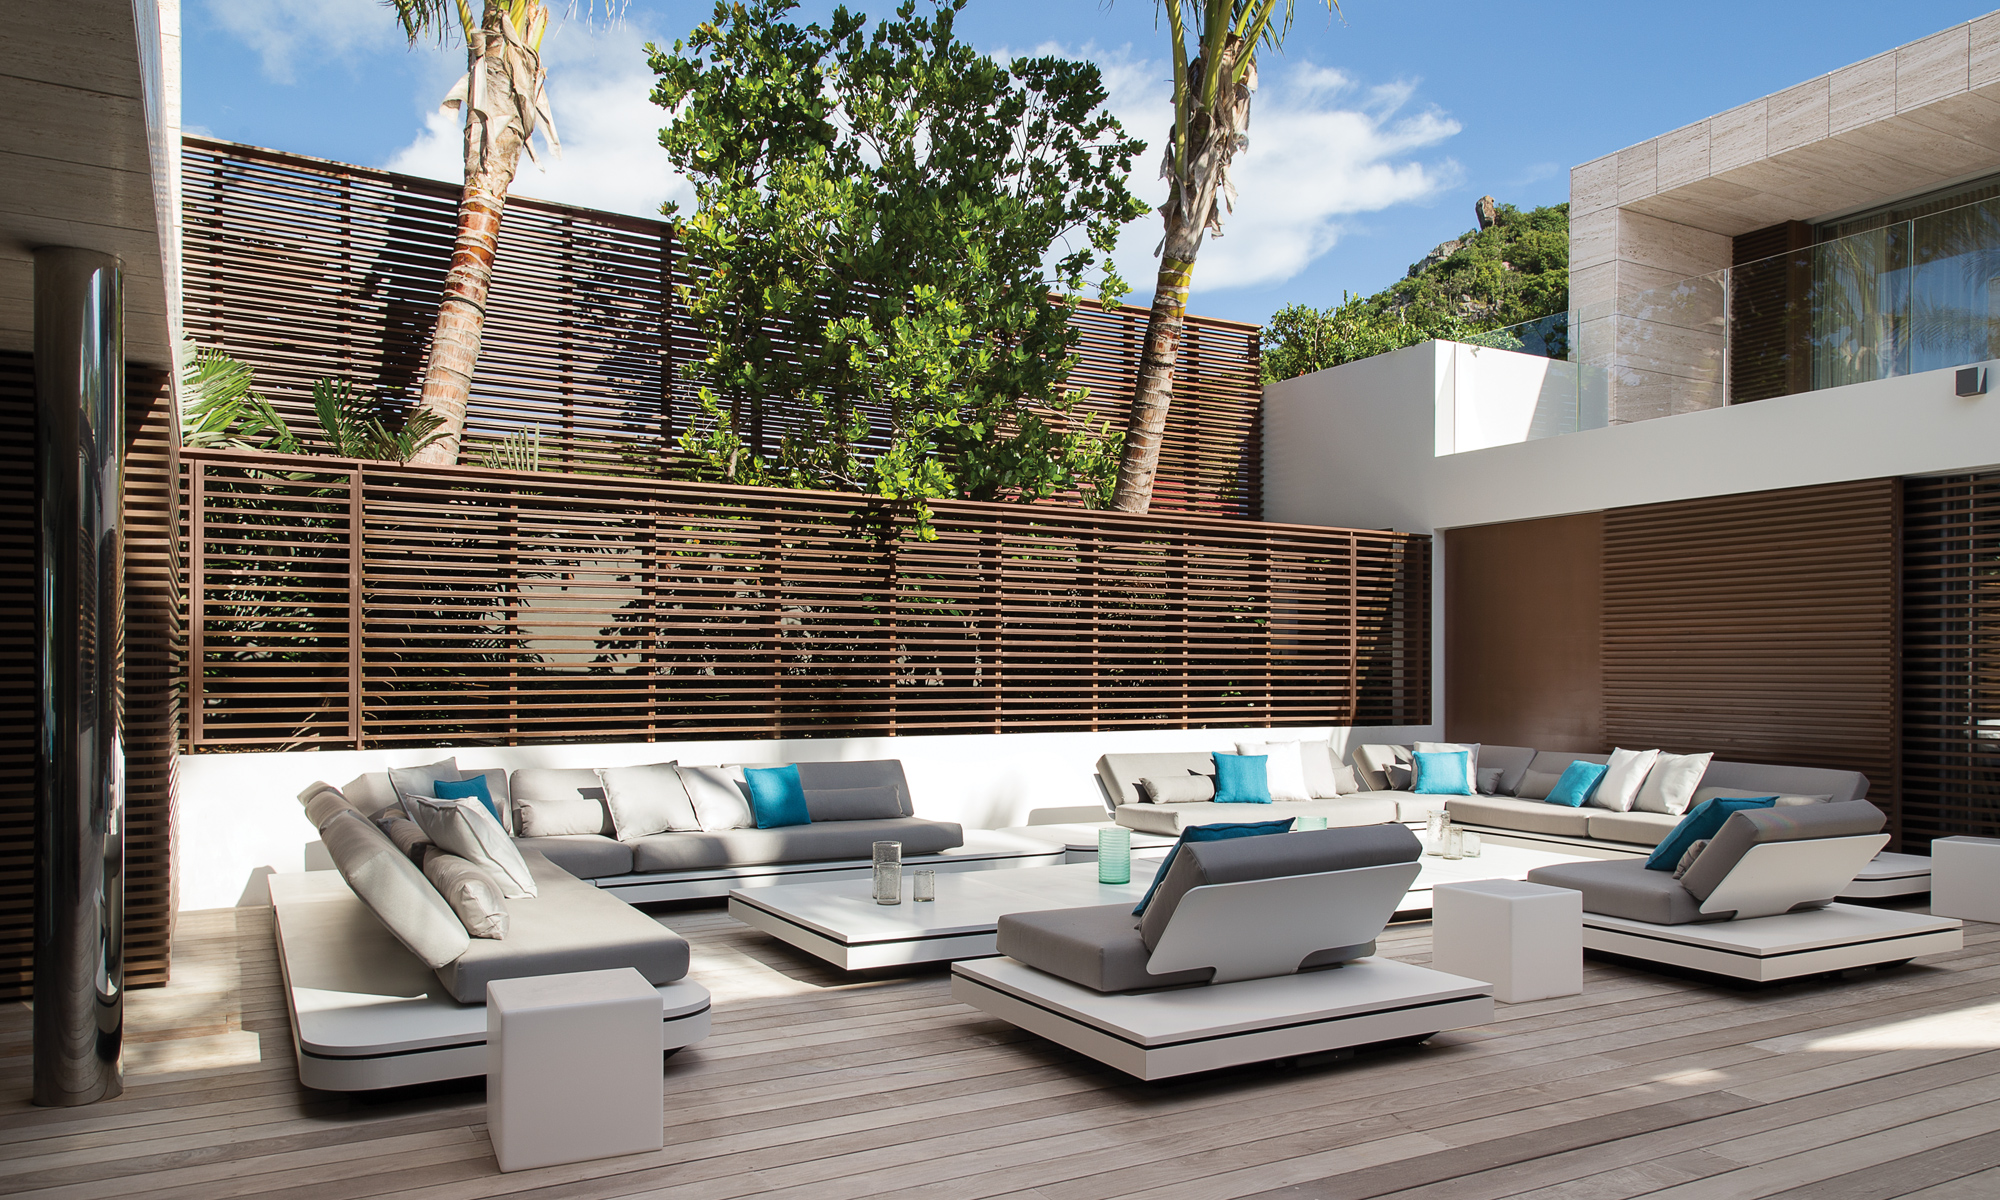 The central courtyard is at the heart of the villa and provides a secluded space to relax or entertain.